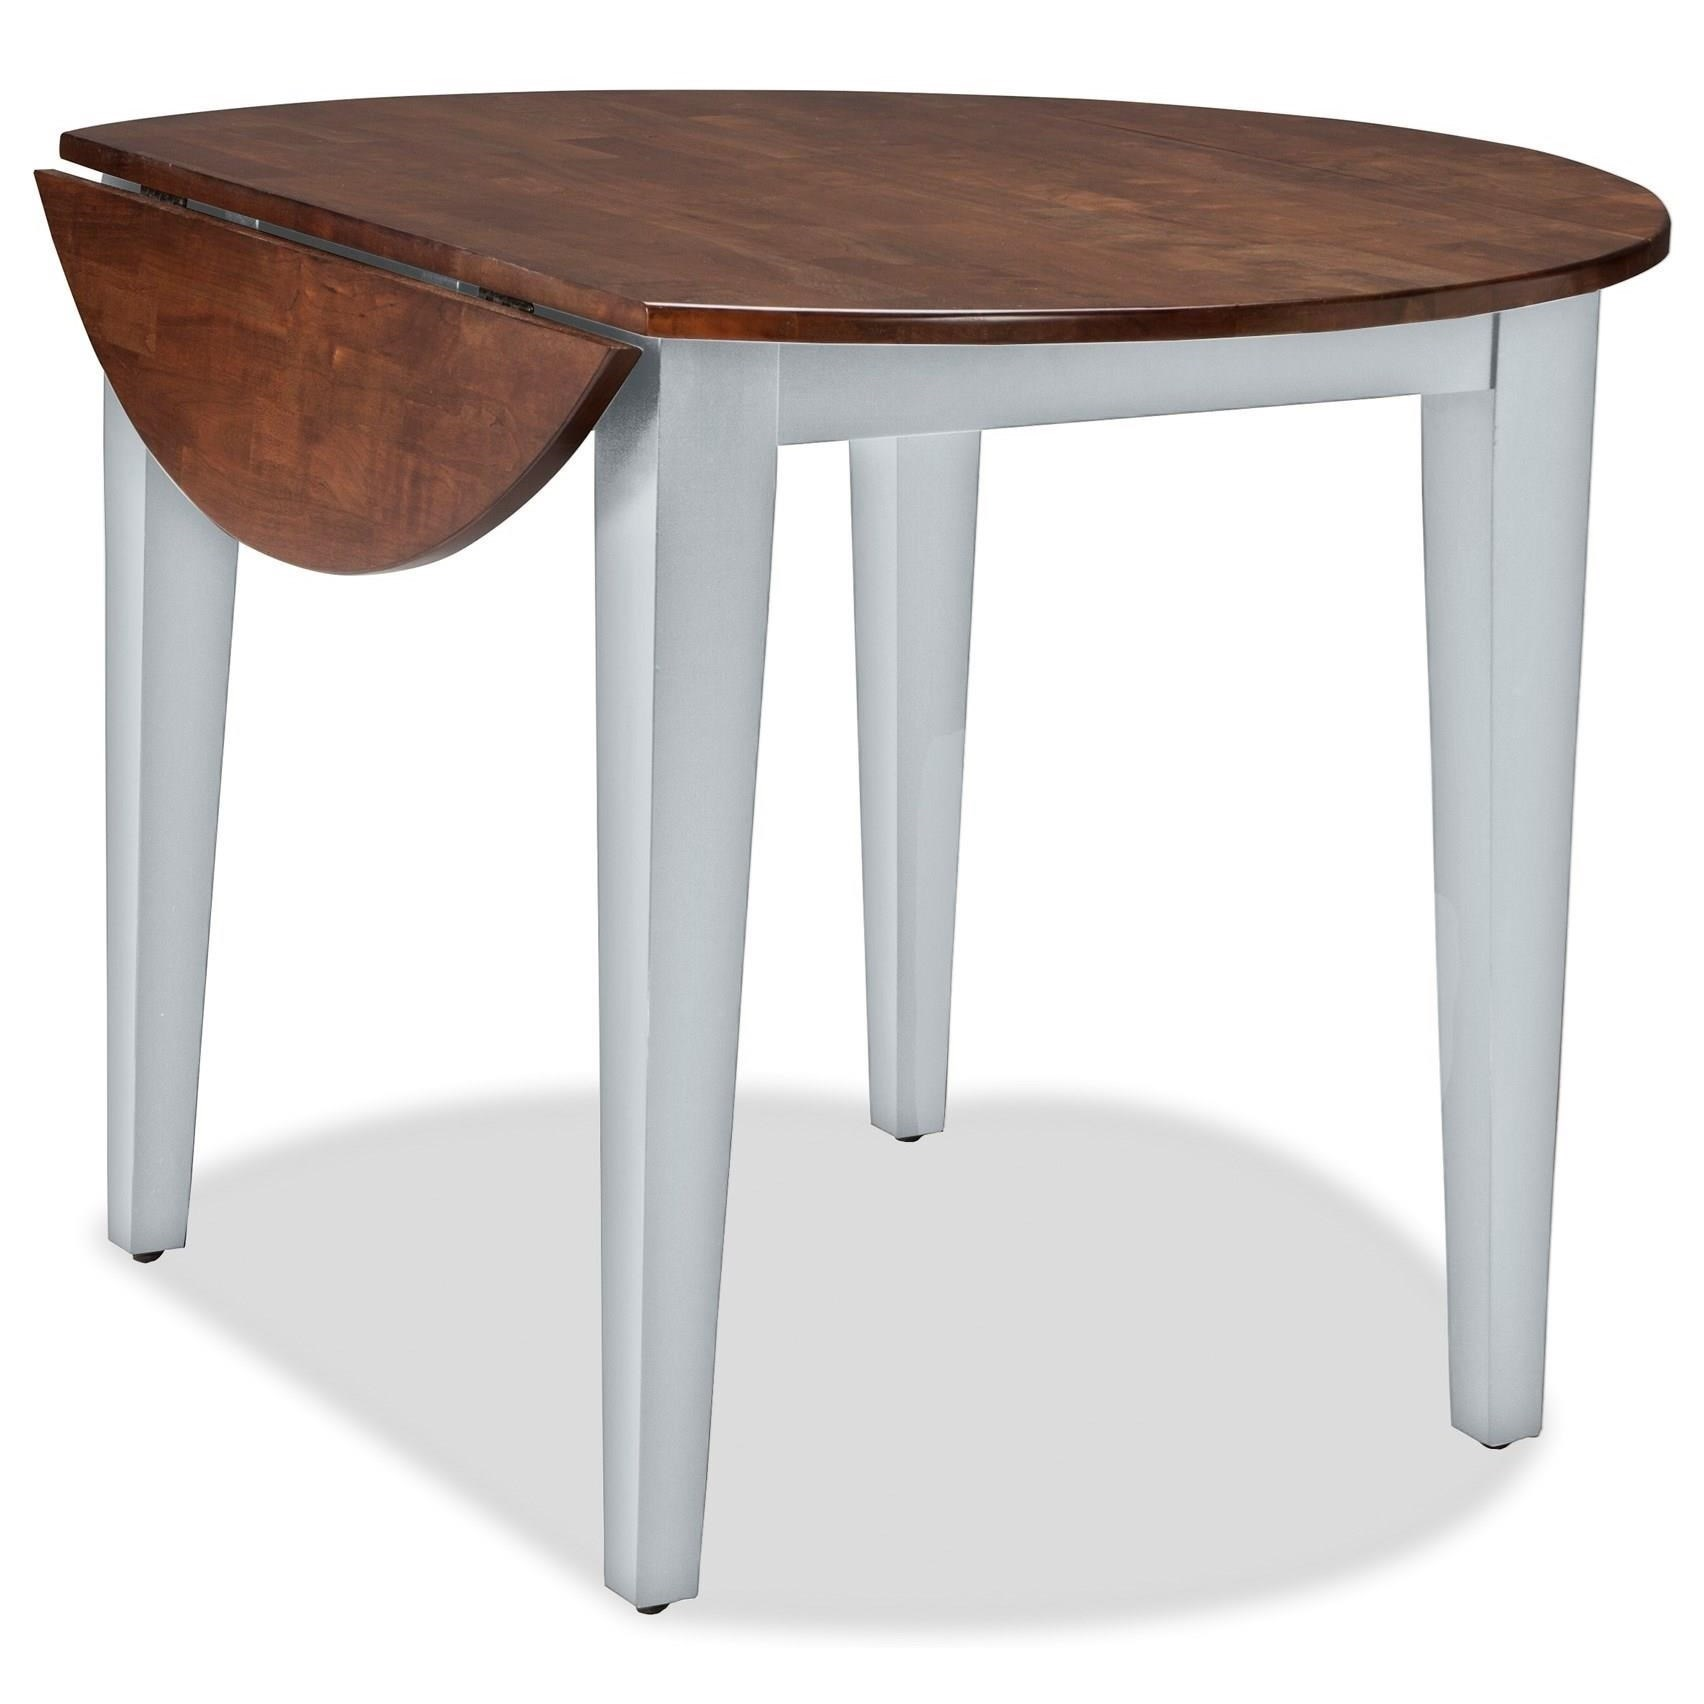 Intercon small space ss ta 42d cyg c 42 round drop leaf table hudson 39 s furniture dining tables - Round drop leaf tables small spaces decor ...